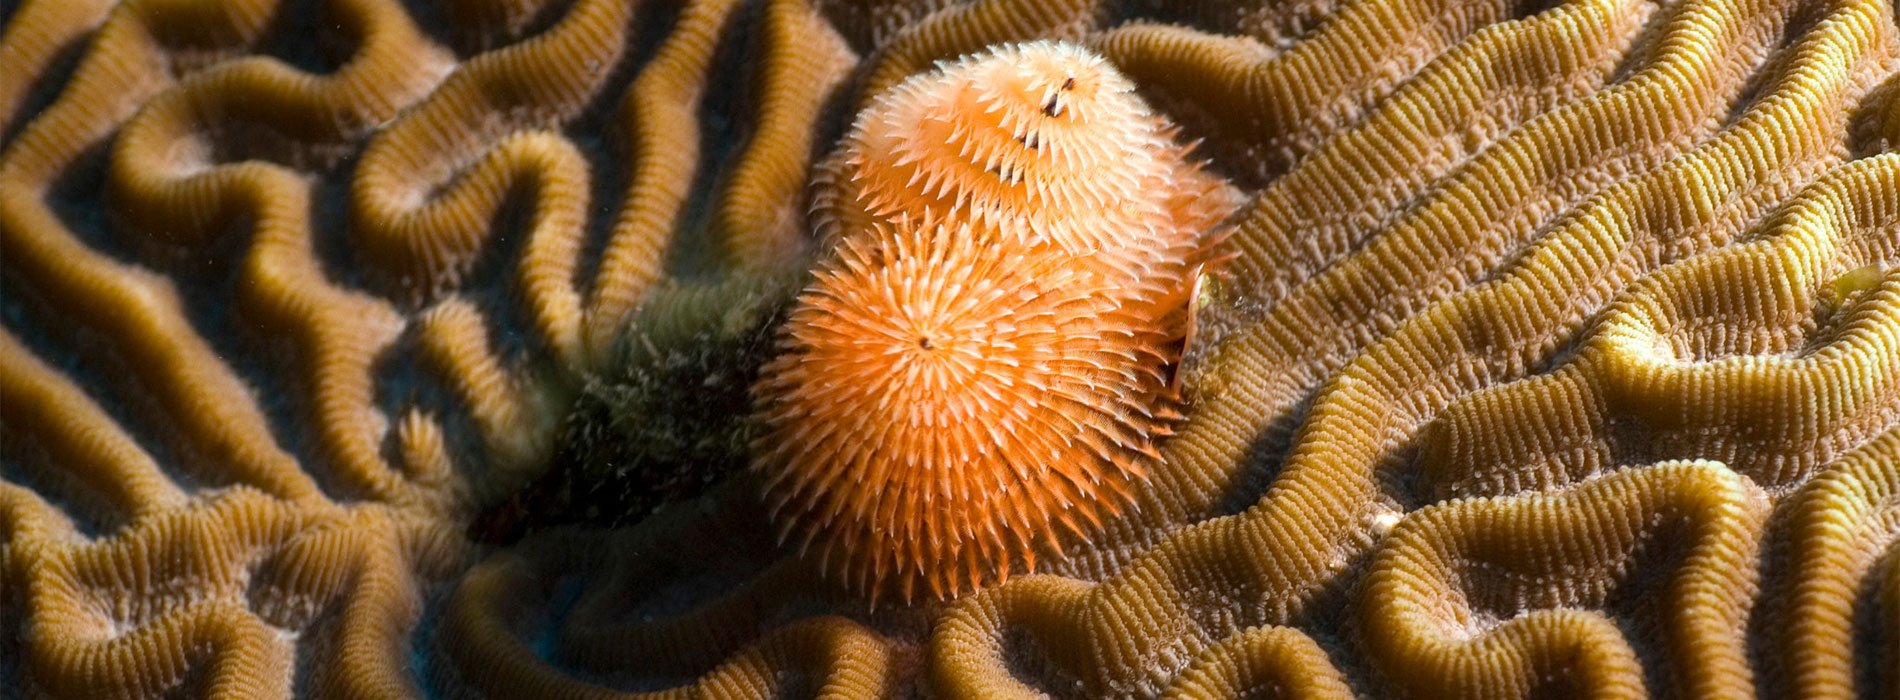 Brain coral with Christmas tree worm